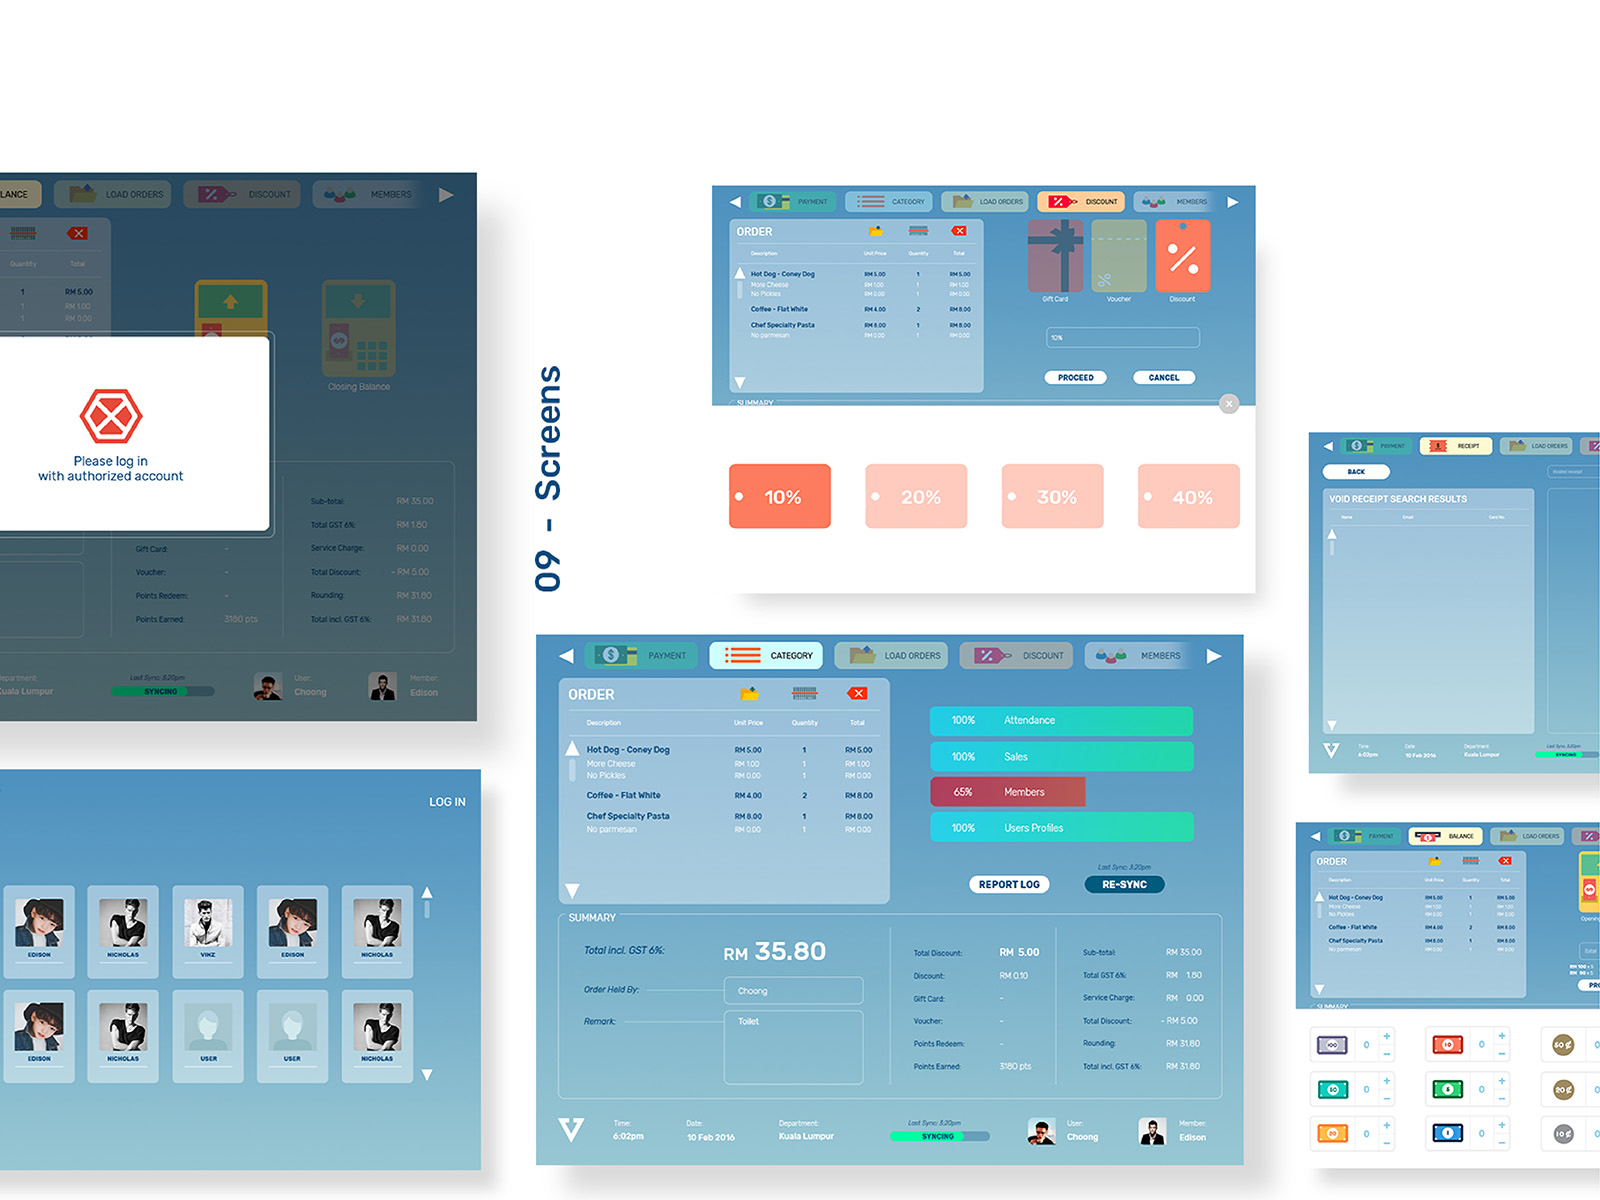 Vipos POS system product user interface and user experience designed screens showing users page, main screen, promotional screen and error screen